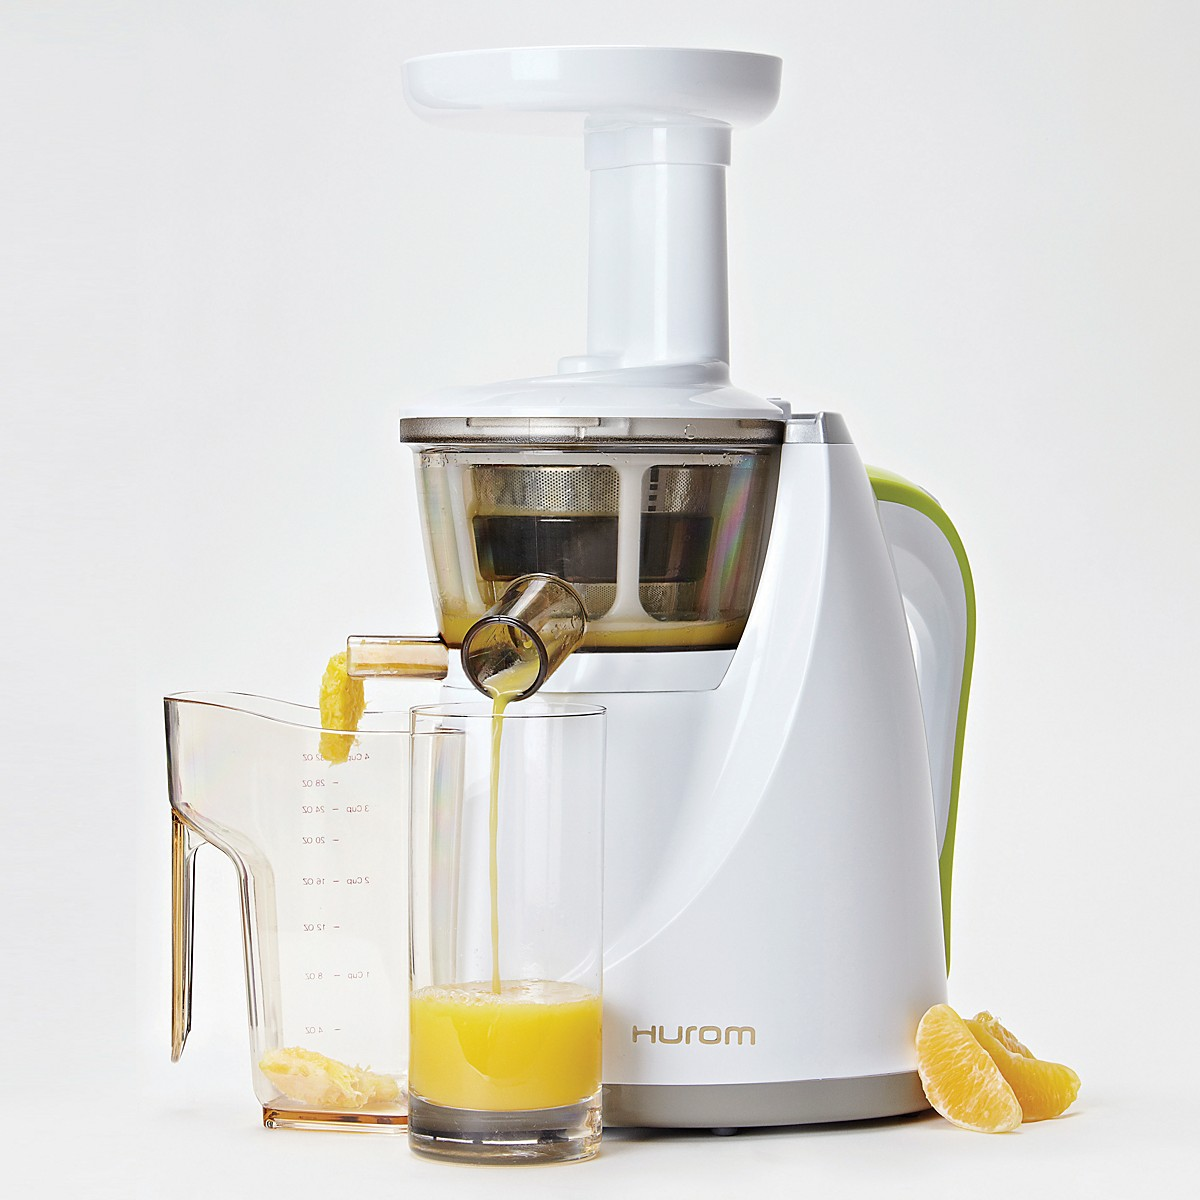 Slow Juicer Orange Peel : The Wish List 2014 Our favourite kitchen appliances for chefs and avid home cooks